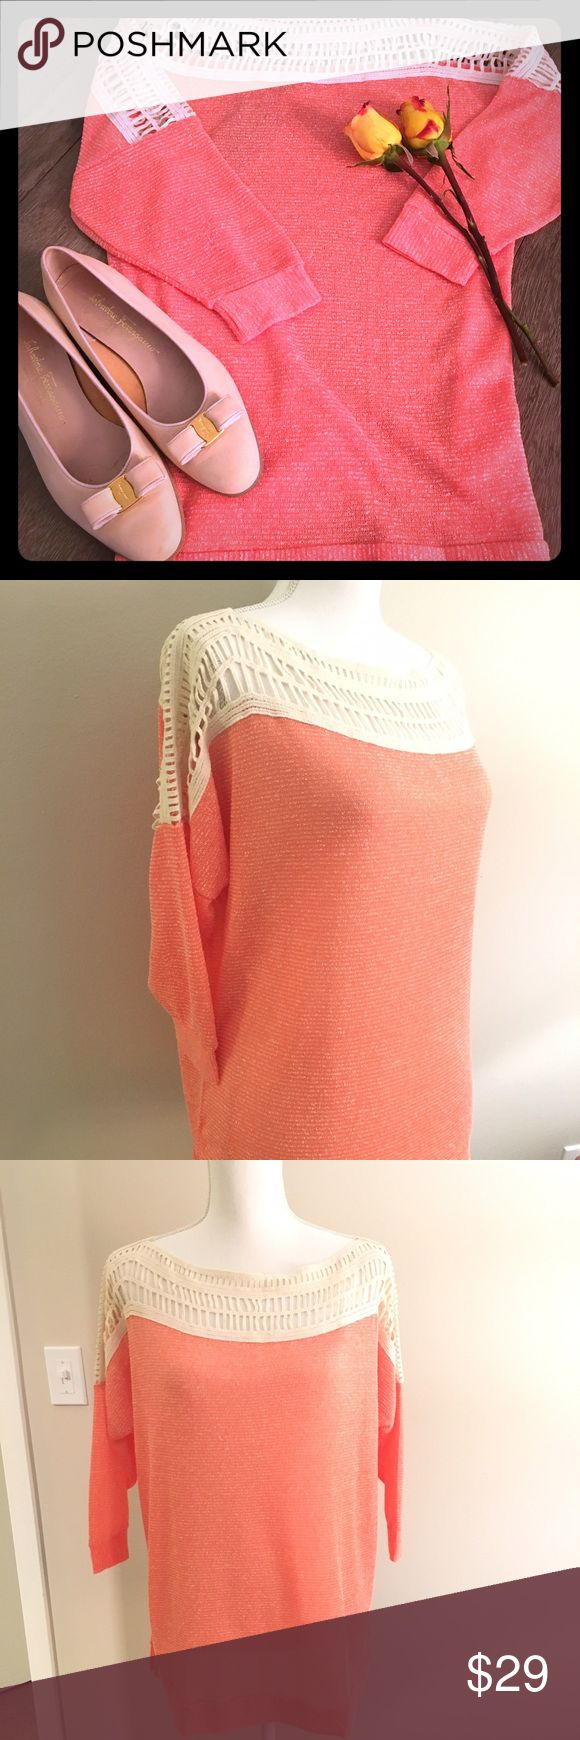 Coral & Cream 3/4 Length Slouchy Sweater- S/M/L Coral & Cream 3/4 Length Slouchy Sweater with a Crochet Top- Sizes Small, Medium, & Large.  Brand New Boutique Item!  Perfect for the spring- lightweight sweater that can transition from warm afternoons to cooler evenings.  Measurements Approx: Small: Length: 27 inches; Bust: 46 inches; Medium: L: 28 inches; B: 52 inches; Large: L: 30 inches; B: 56 inches.  Bust measures roomy because top is slouchy style.  Color is a light peachy coral & cream…